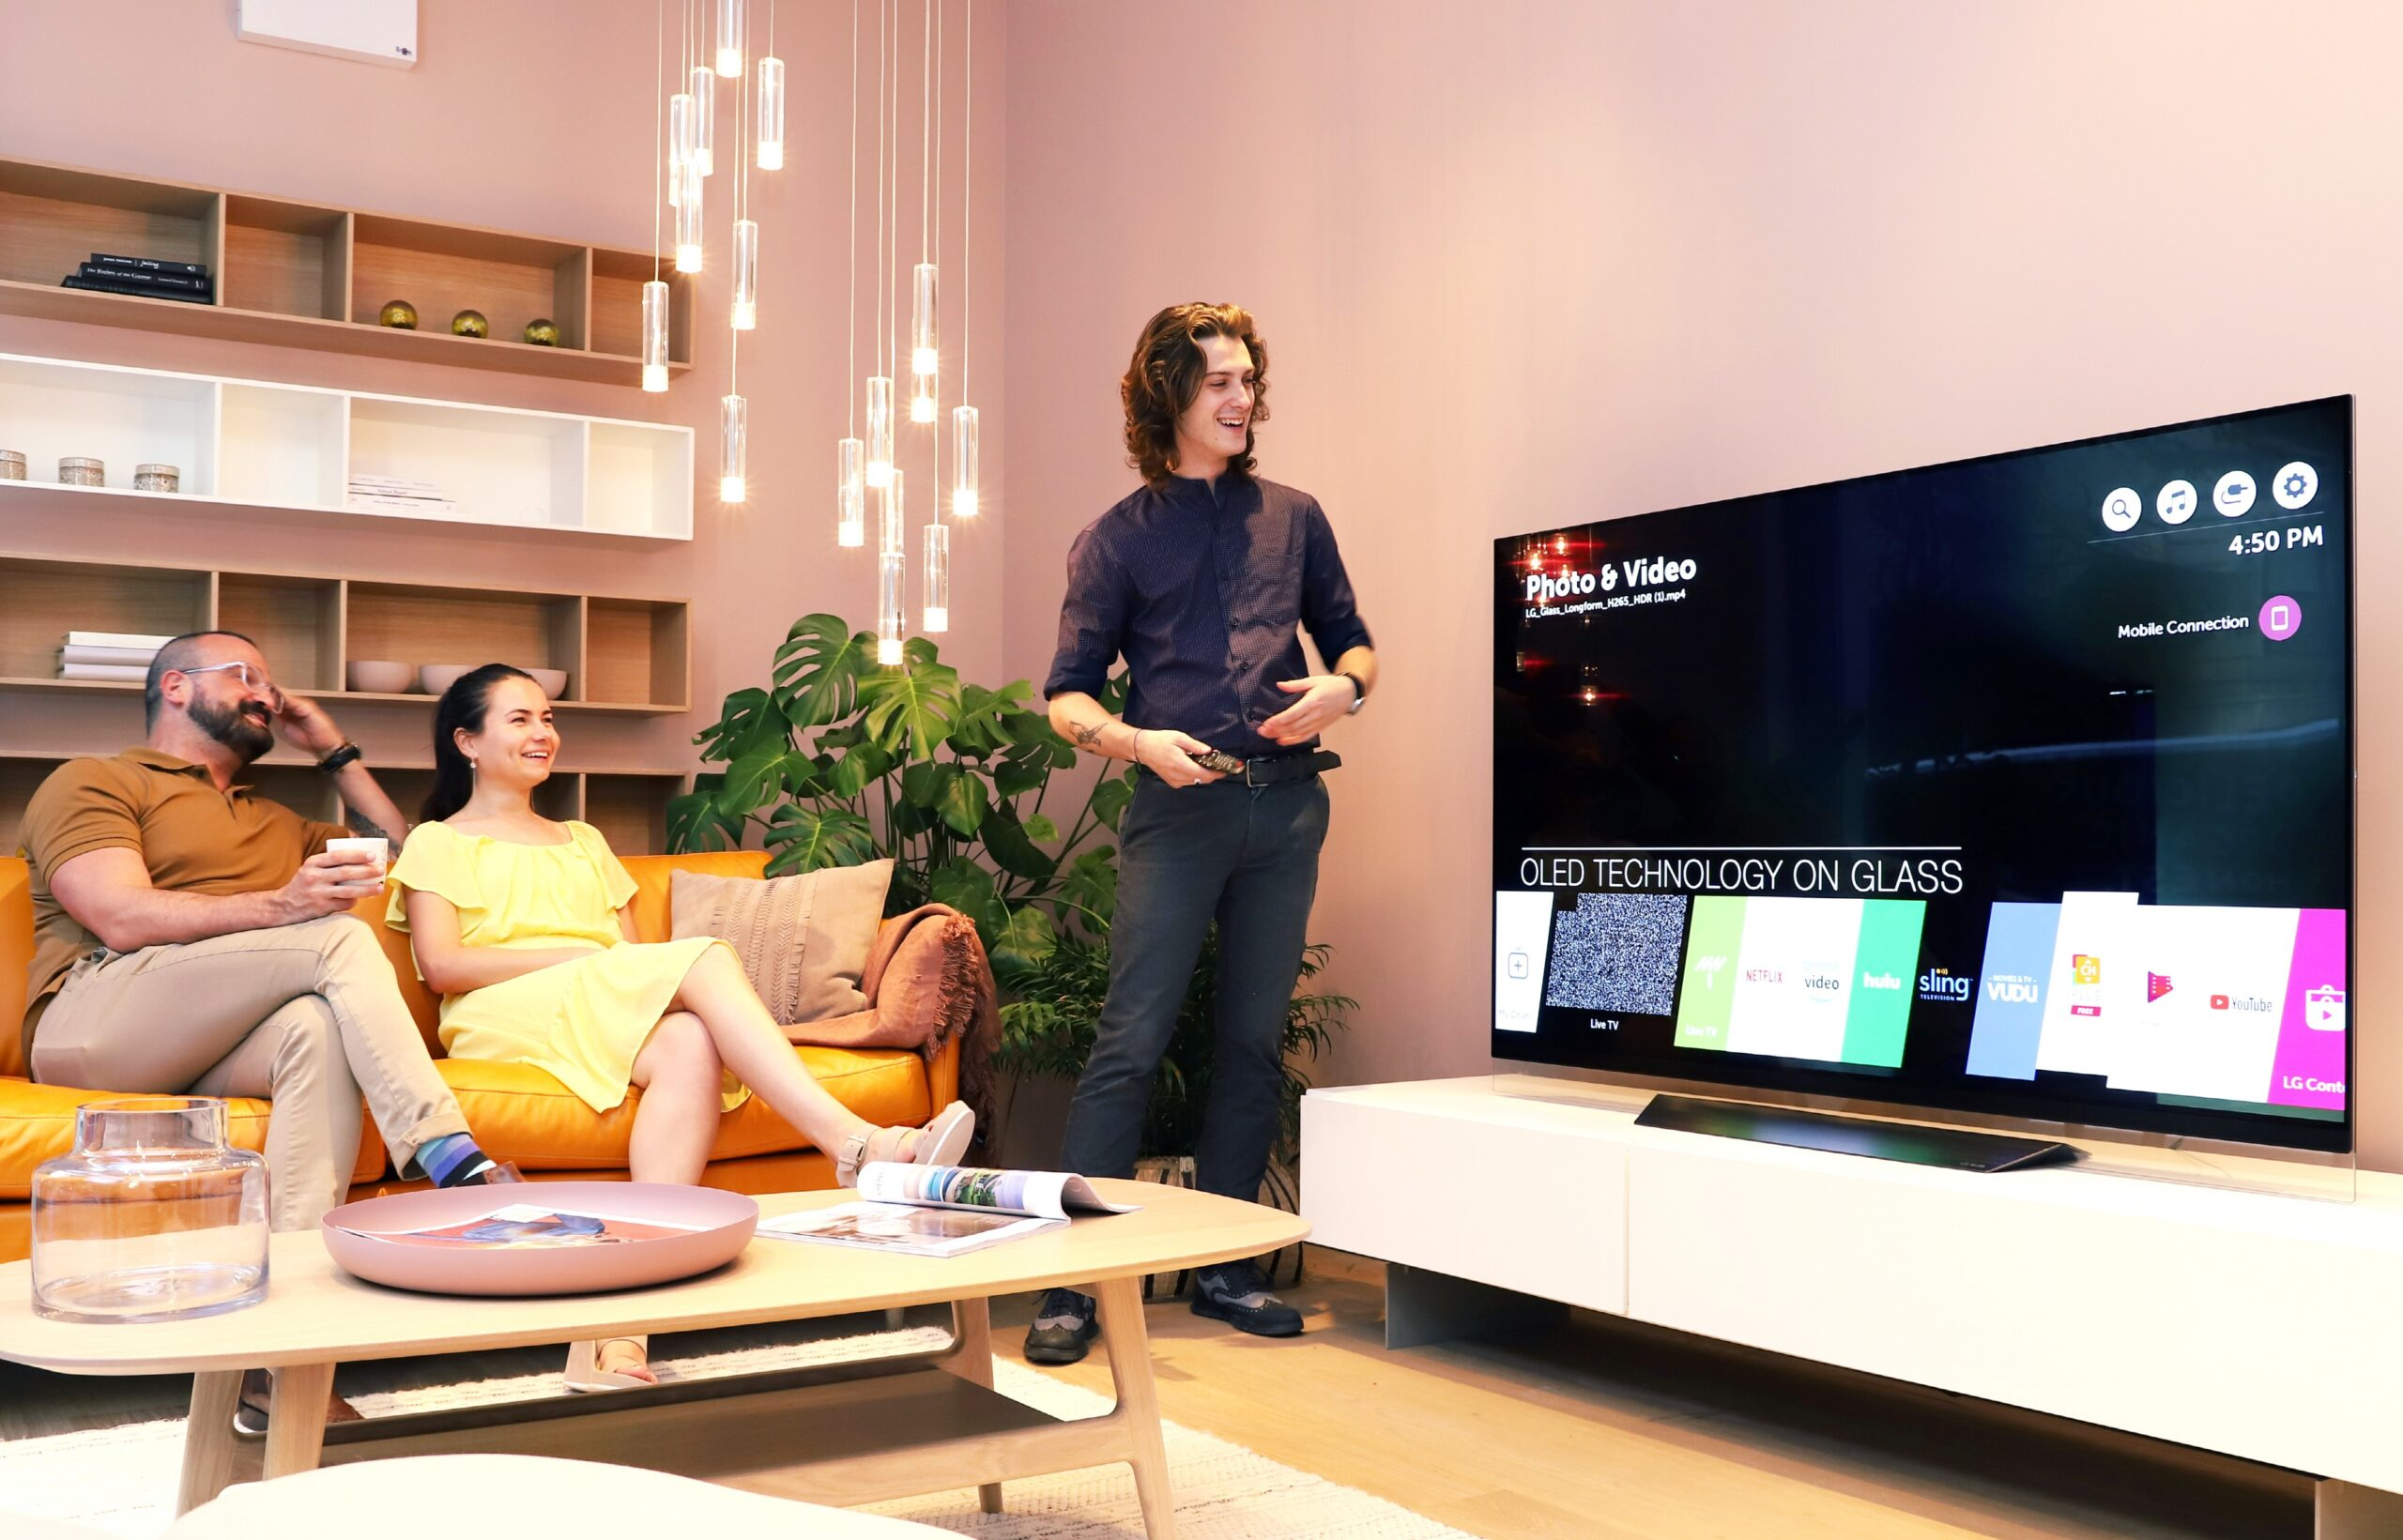 A male attendant tries out the AI assistant features of LG's ThinQ-eabled OLED TV which displays the application bar of webOS platform on the screen